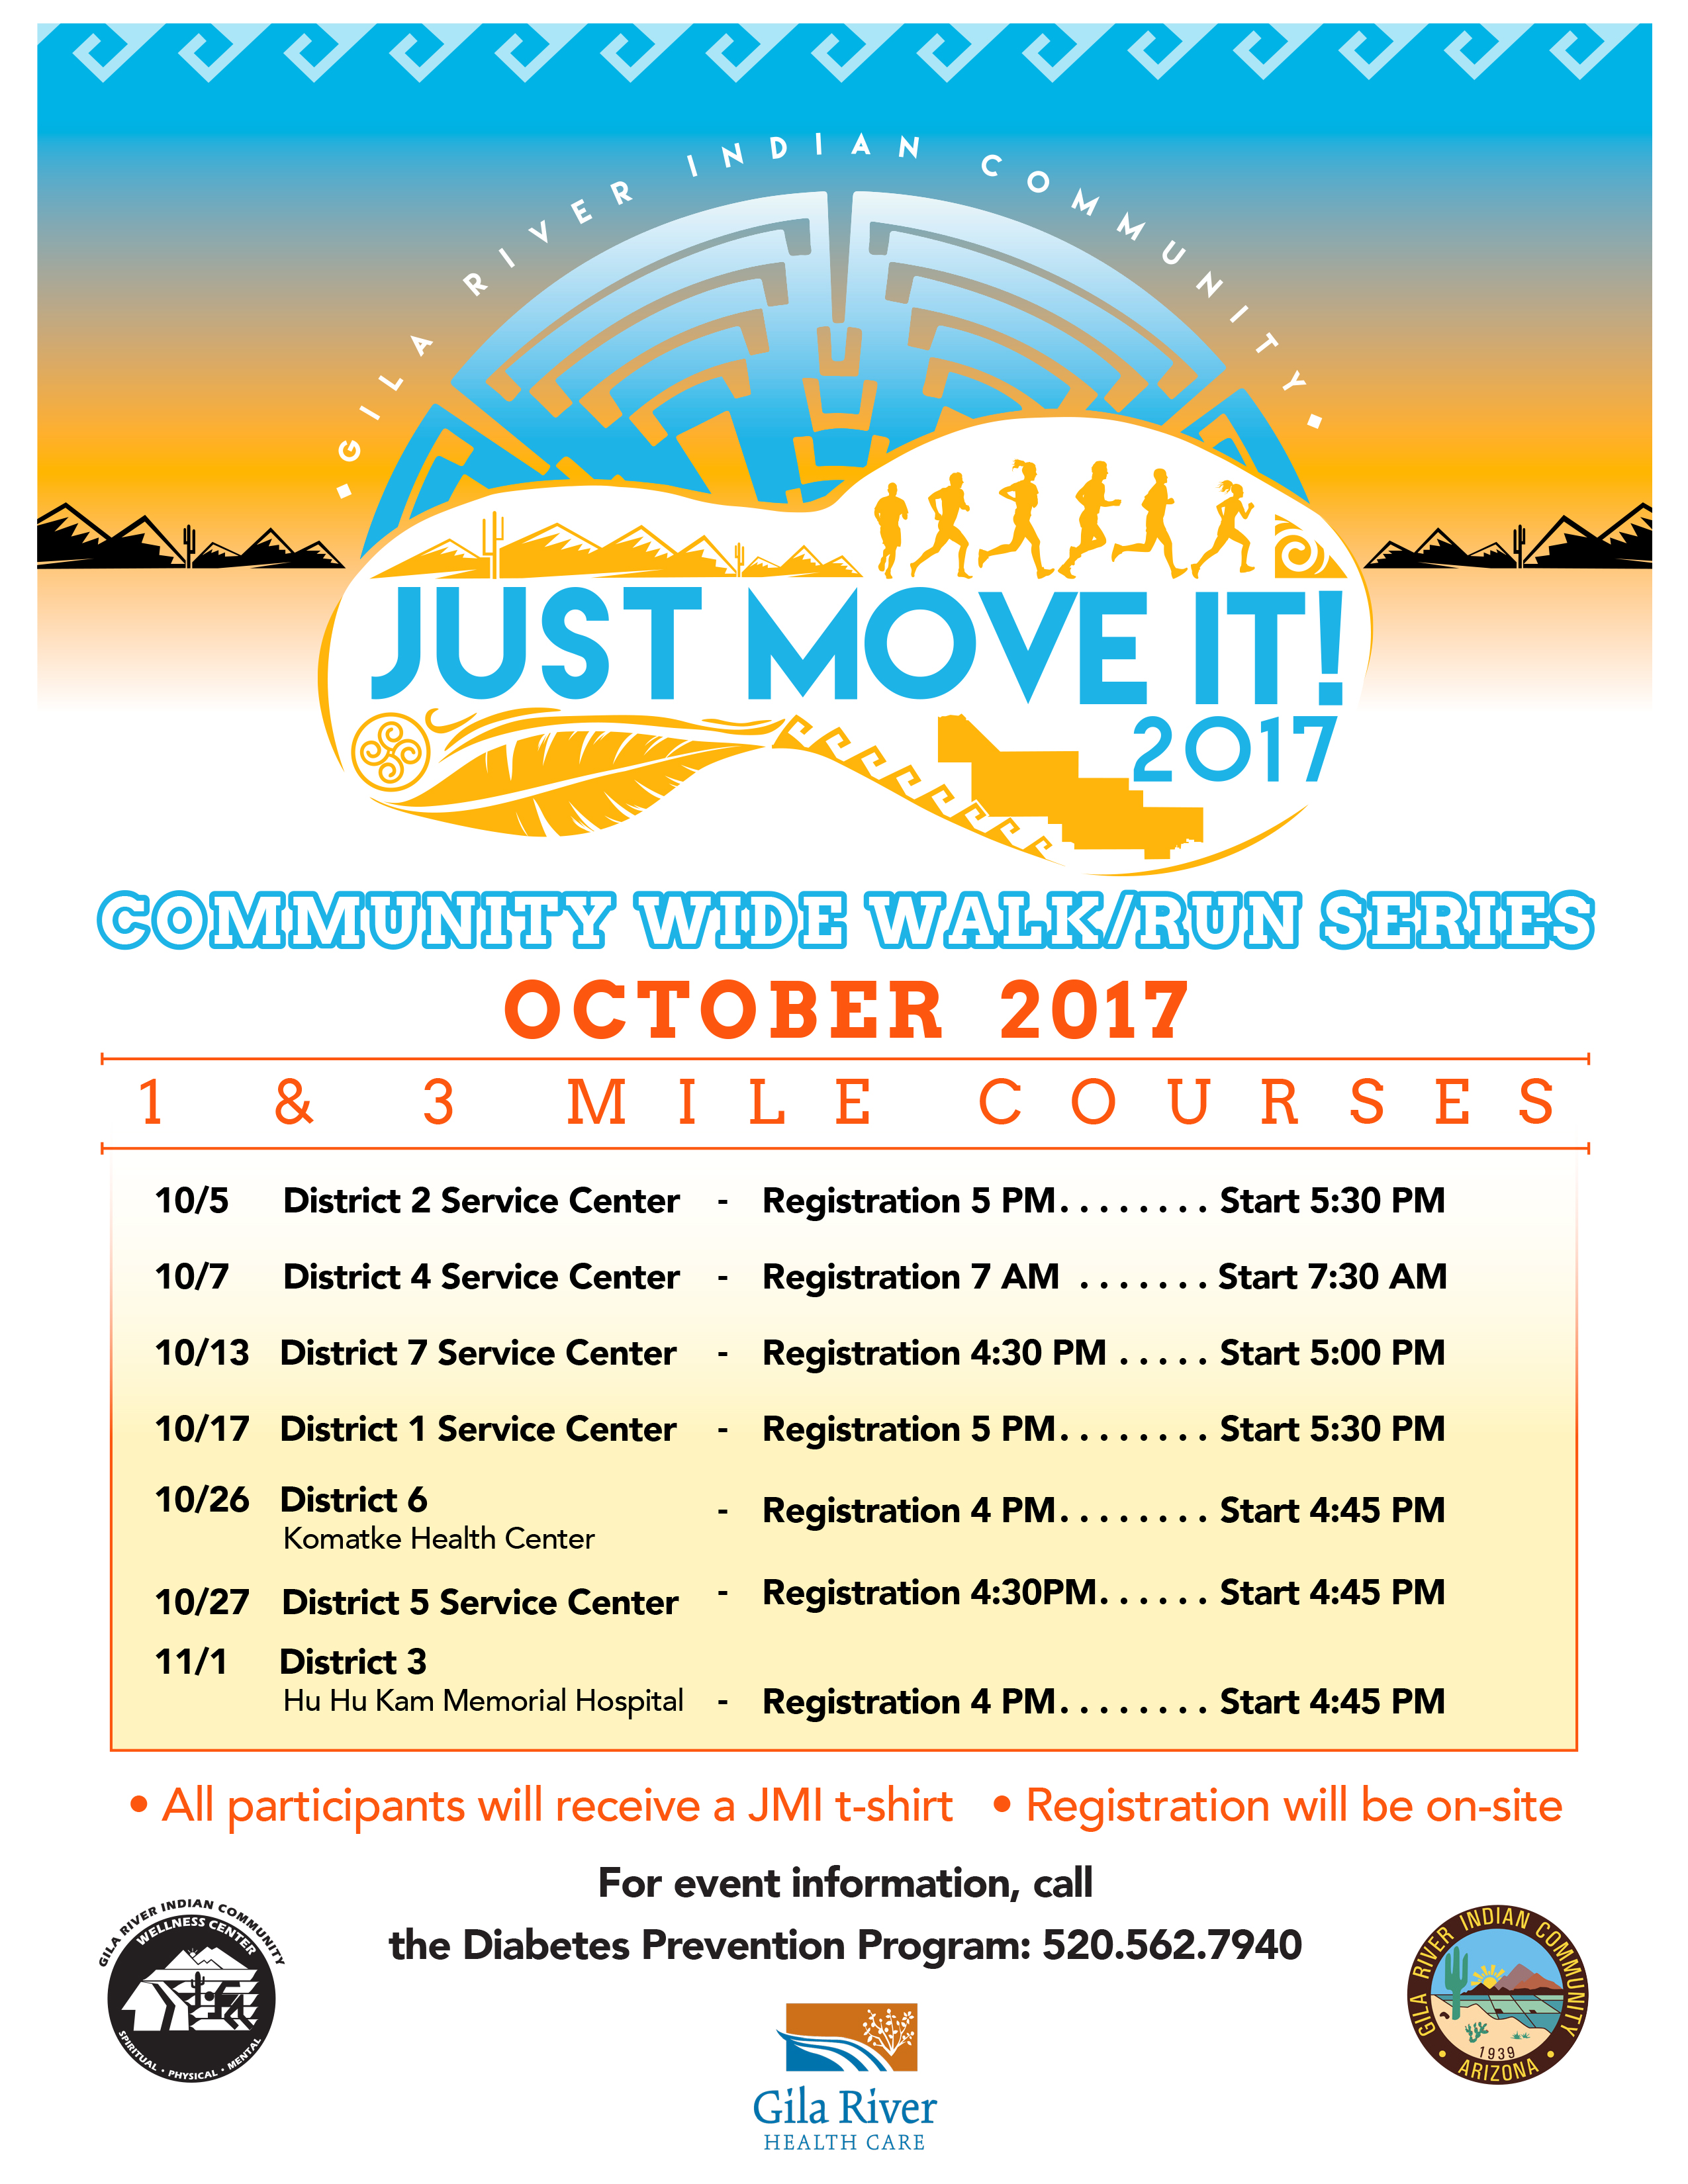 Just-Move-it-17-flyer Revised 8.27.17